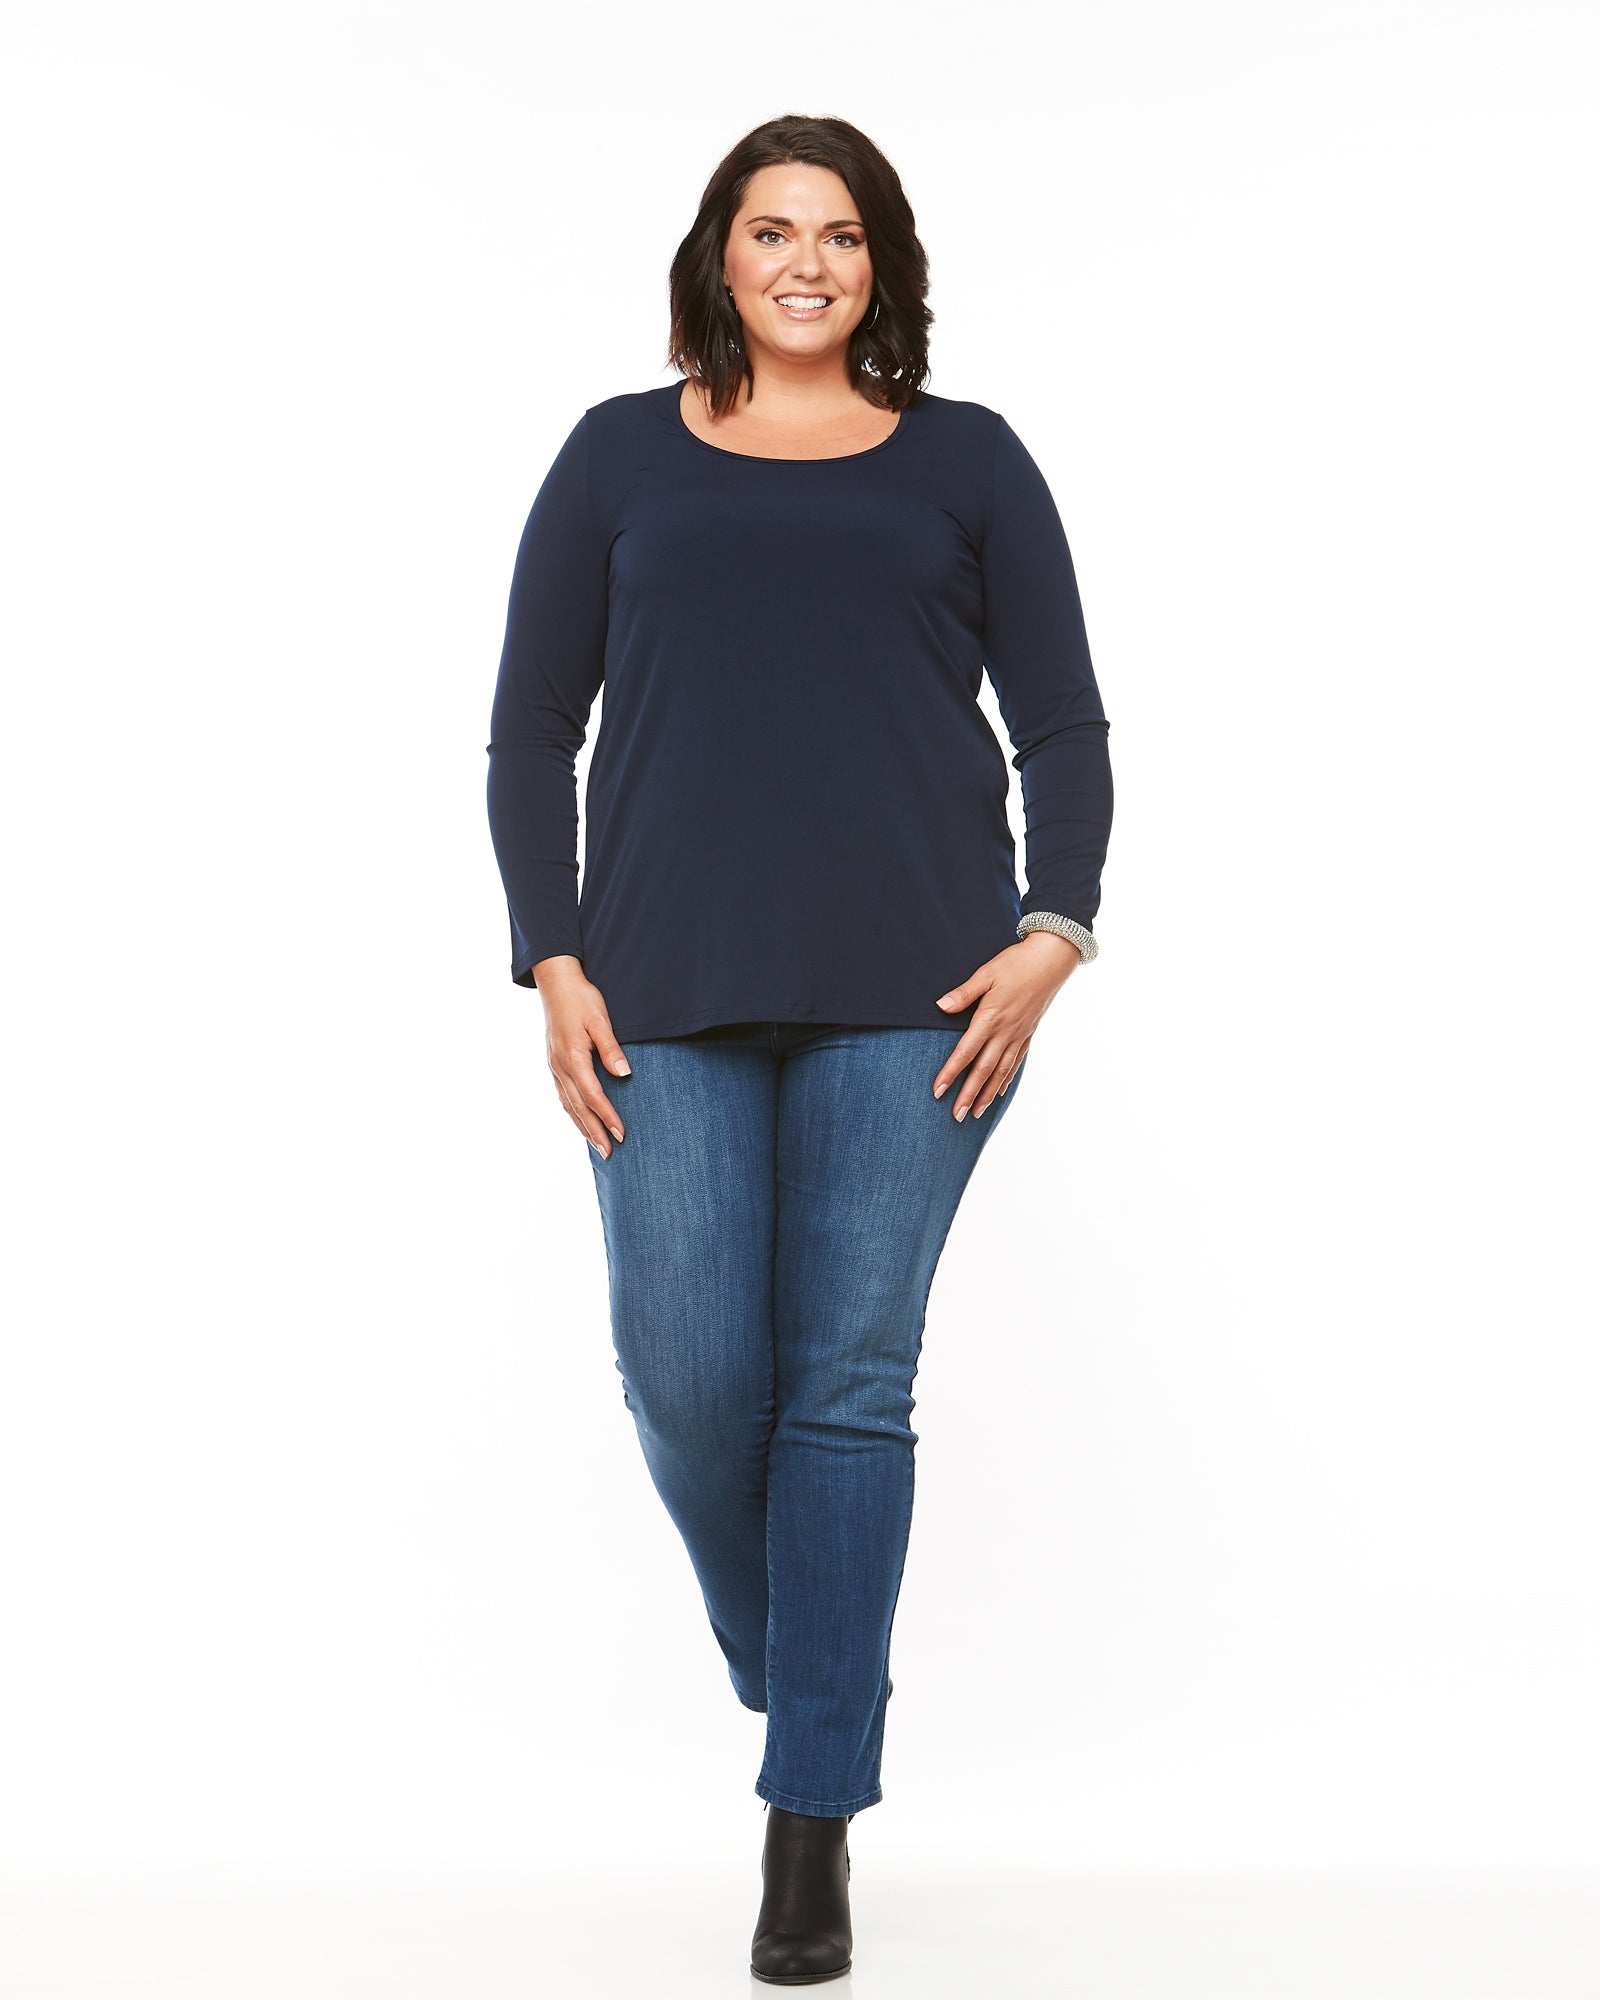 Soft Knit Long Sleeve Top - Navy Size 12-24